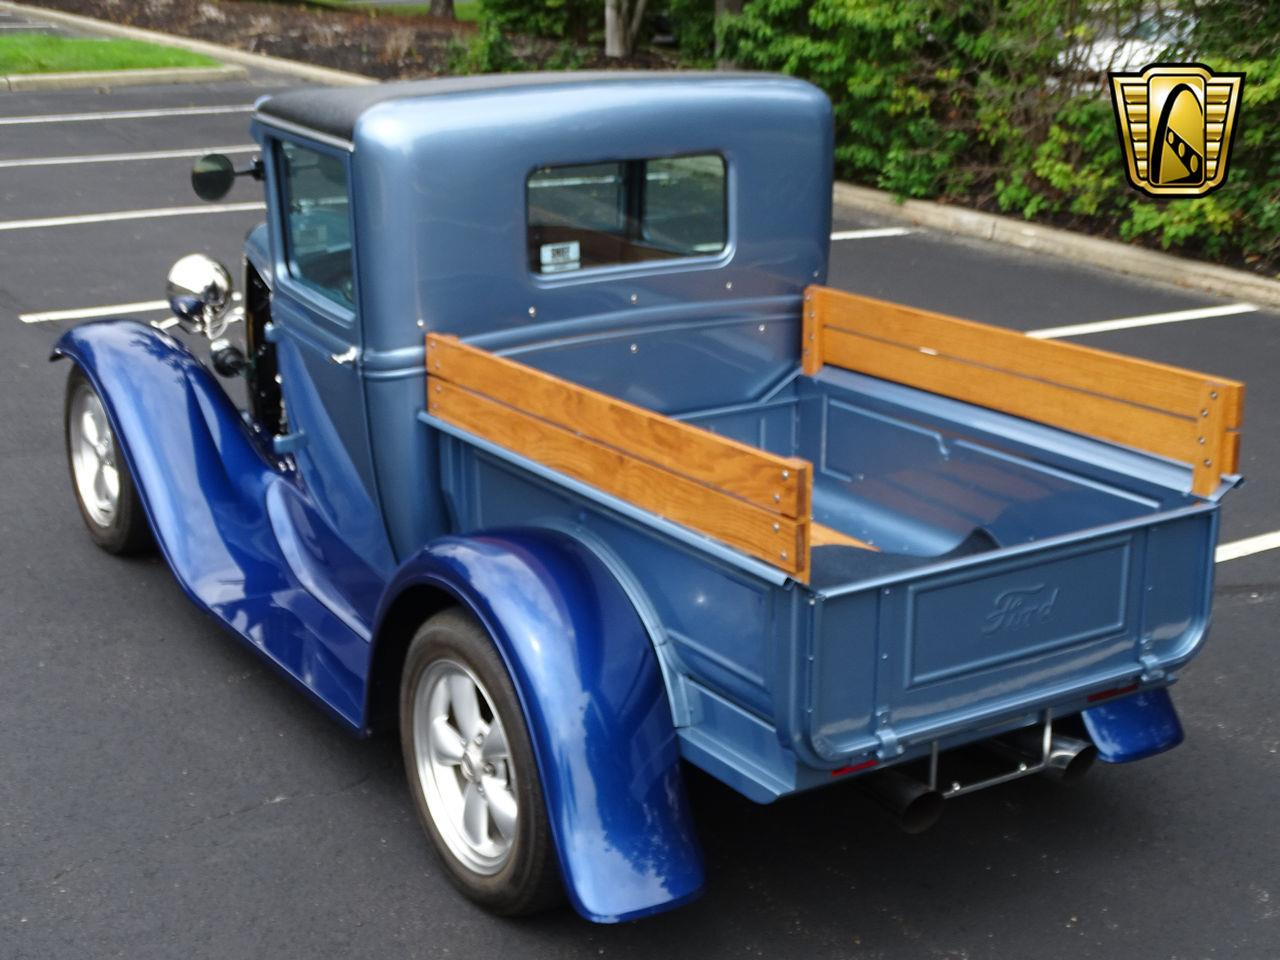 Large Picture of Classic 1931 Ford Model A - $54,000.00 Offered by Gateway Classic Cars - Philadelphia - LNTS